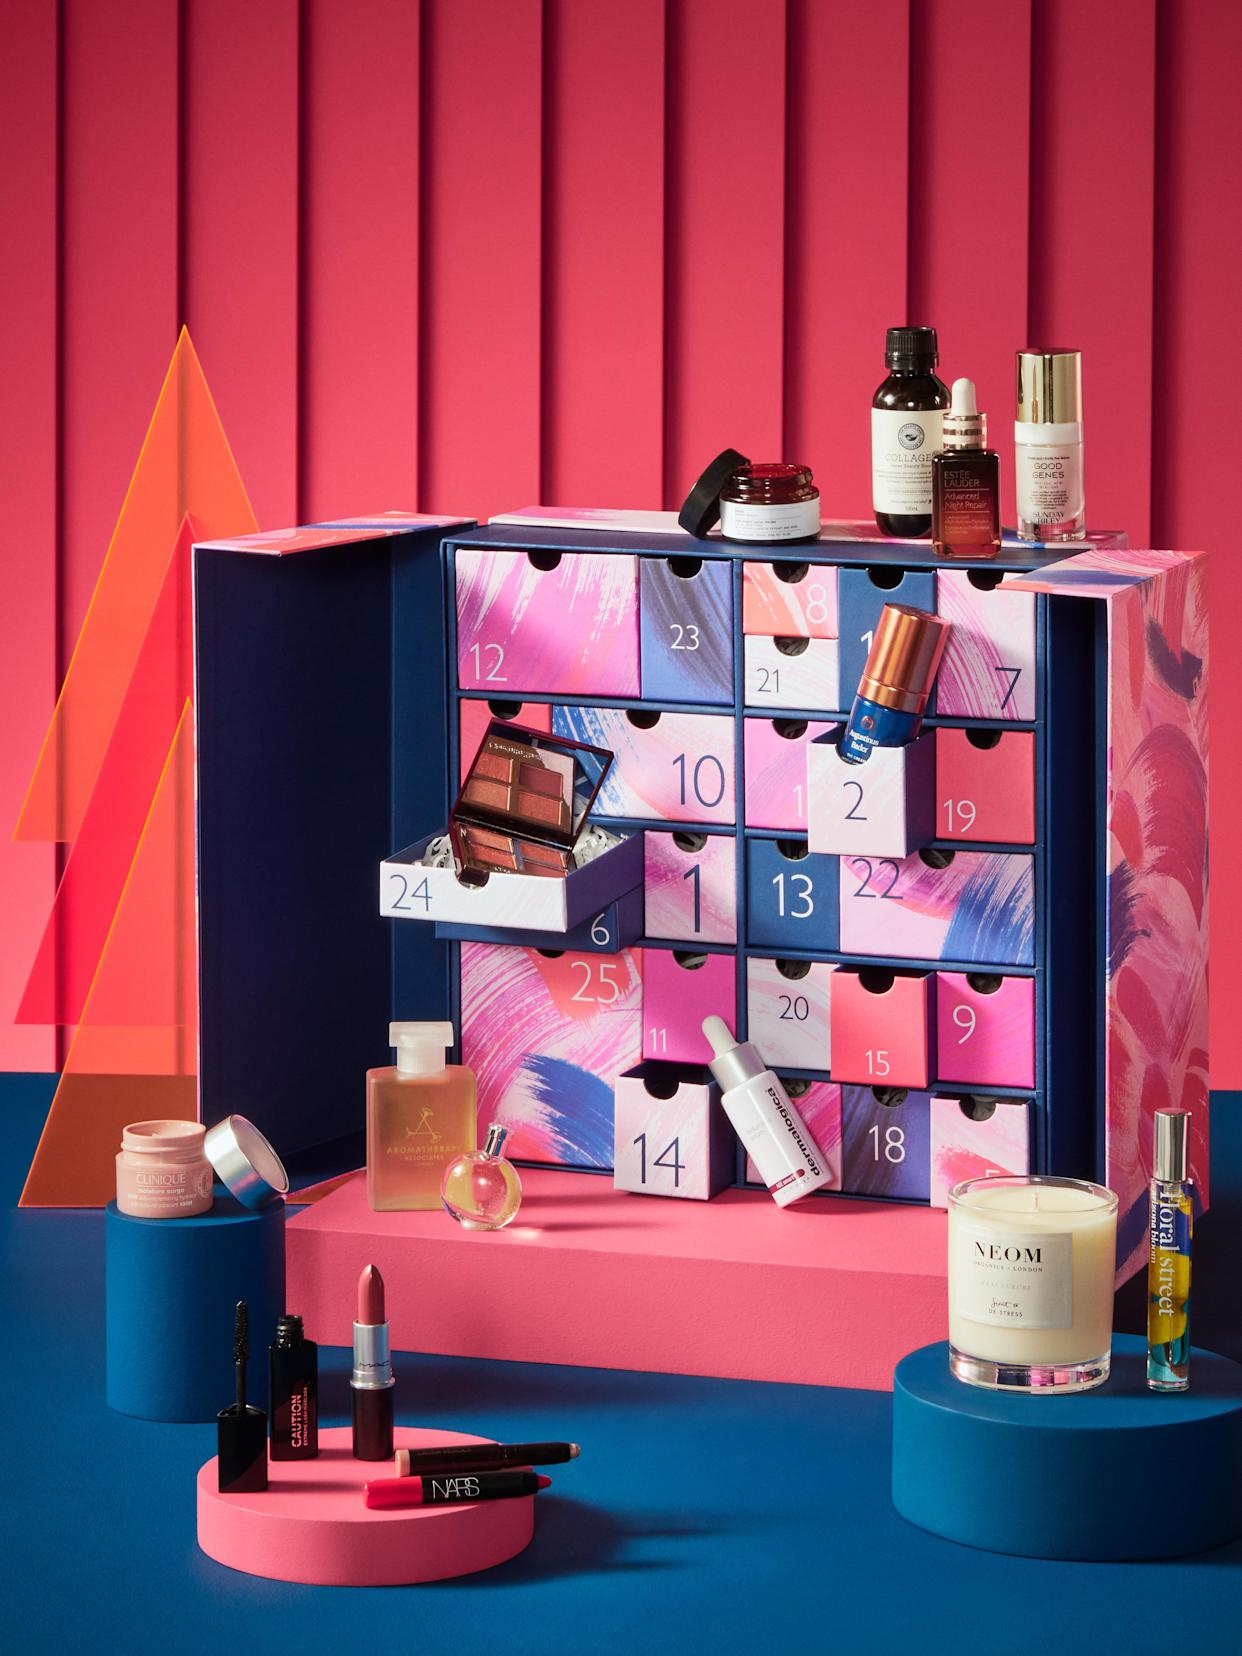 John Lewis' Beauty Advent Calendar includes 26 products (two to reveal on Christmas day). (John Lewis)